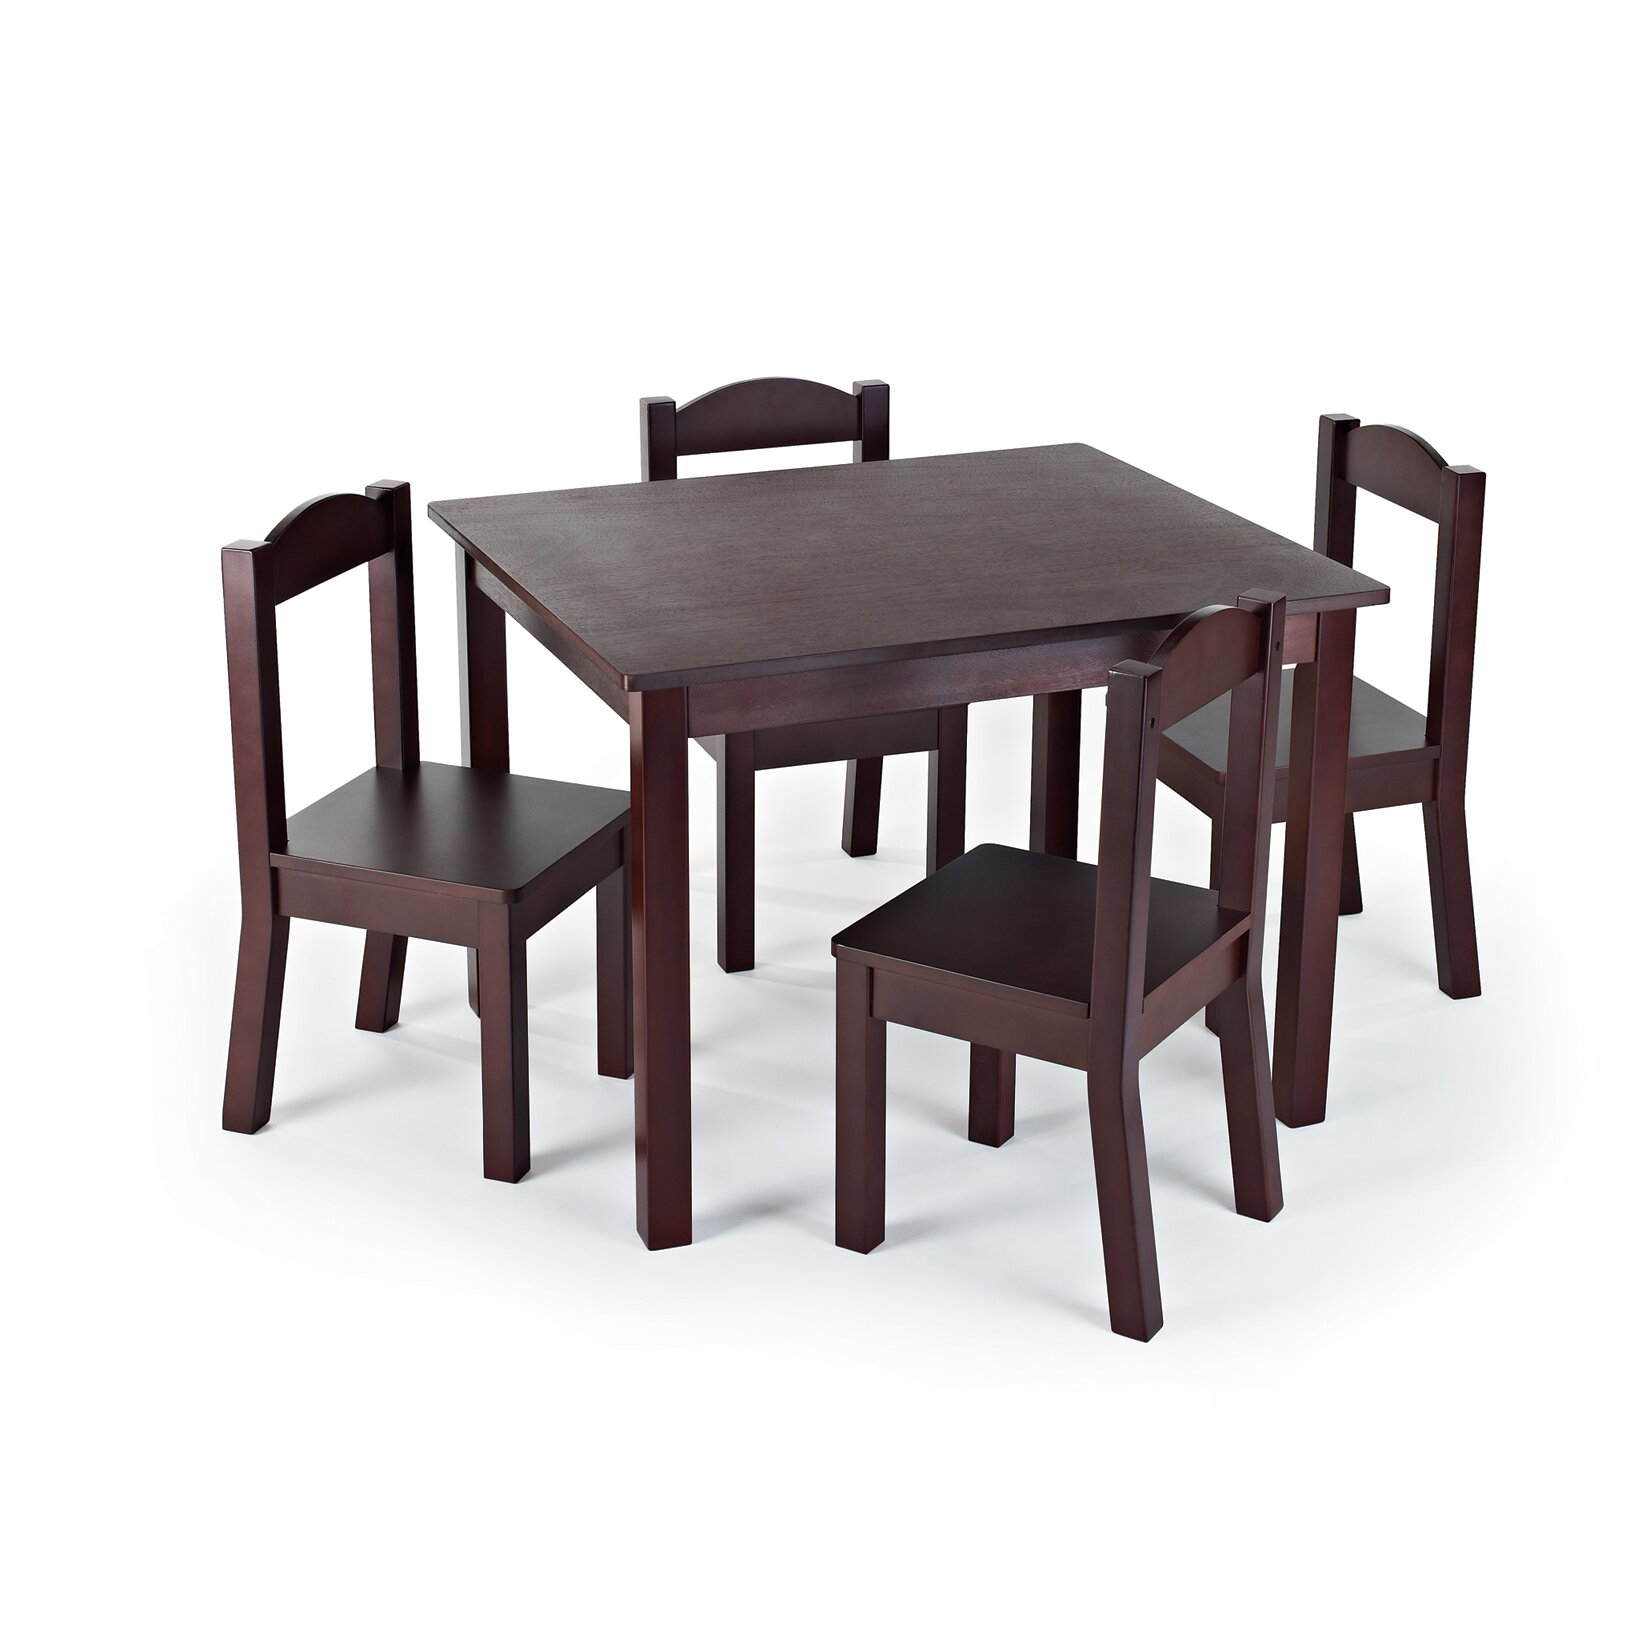 Zoomie Kids Samira Kids 5 Piece Table and Chair Set